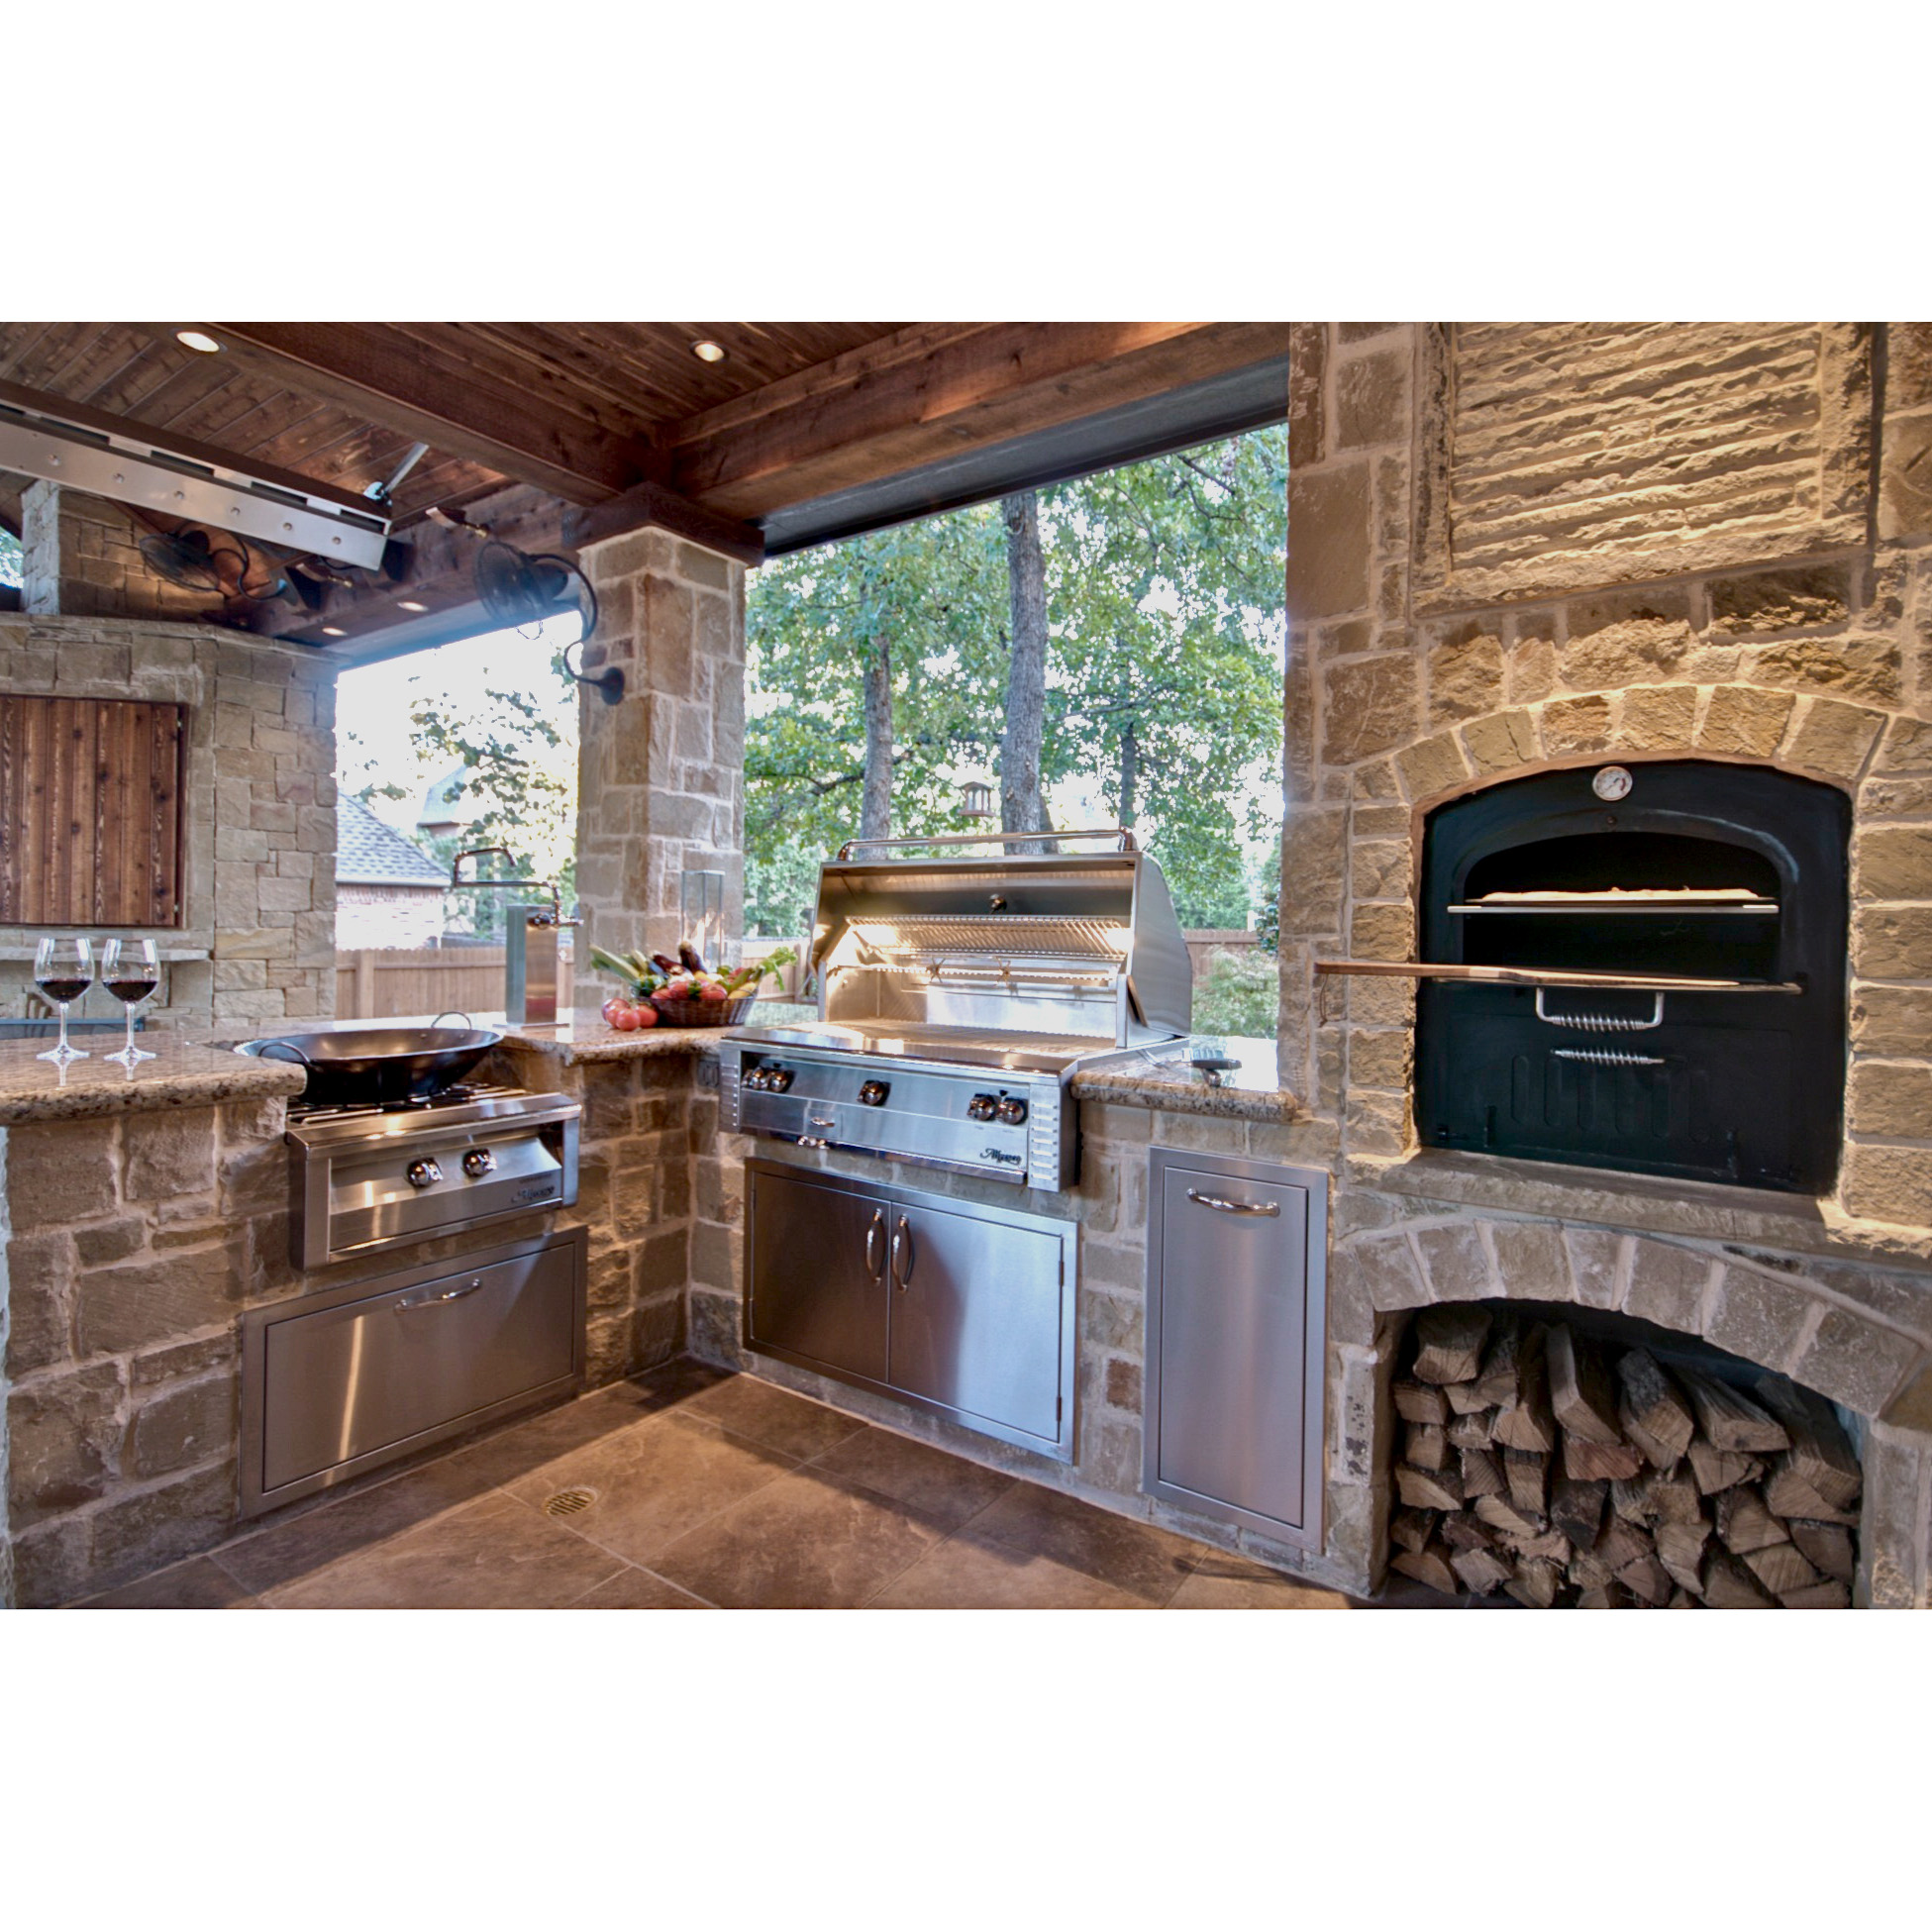 Alfresco 42-in. Built-in Gas Grill With Sear Zone and ... on Built In Grill Backyard id=91875